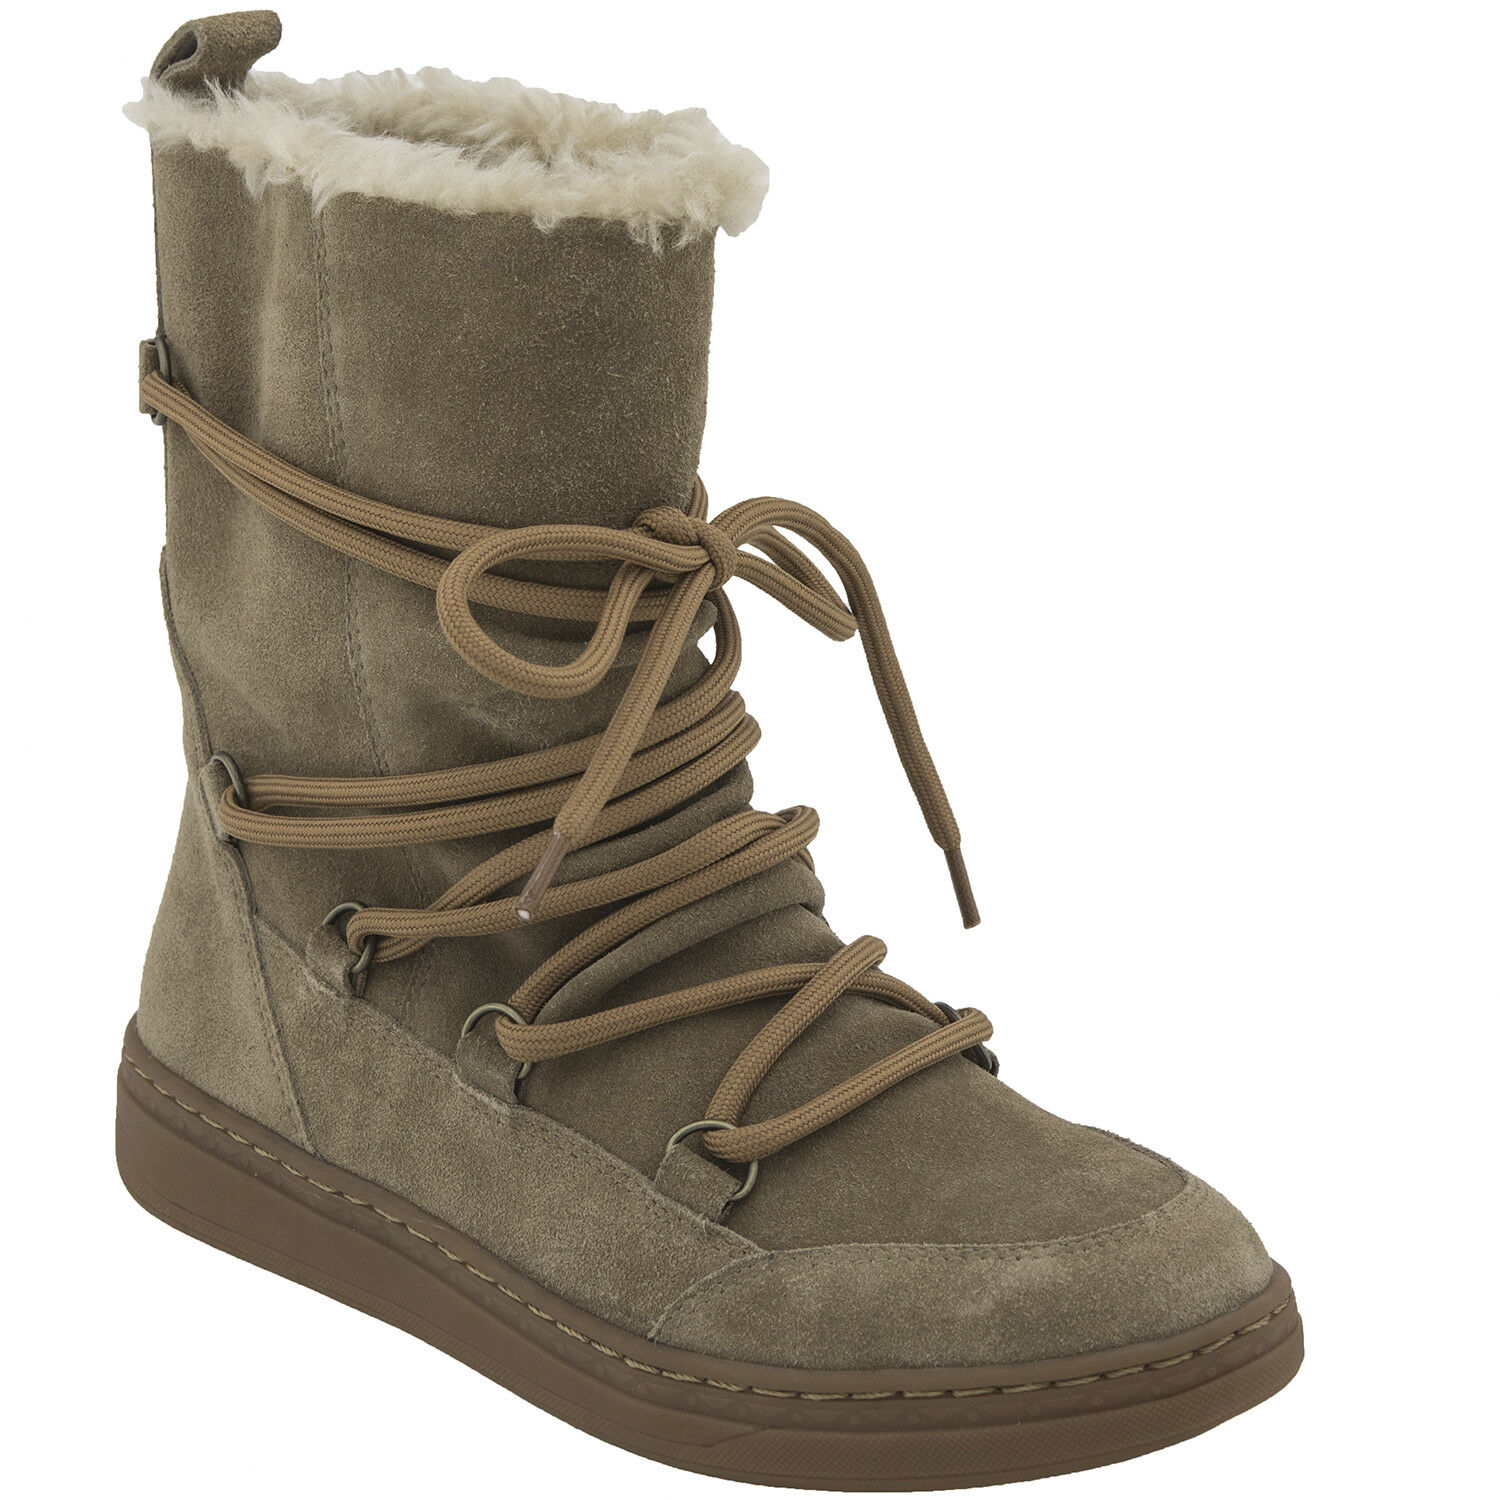 Earth Schuhes Zodiac Winter Snow Tan Boot Water Resistant Light Tan Snow Damenschuhe Größe 8 8822fb